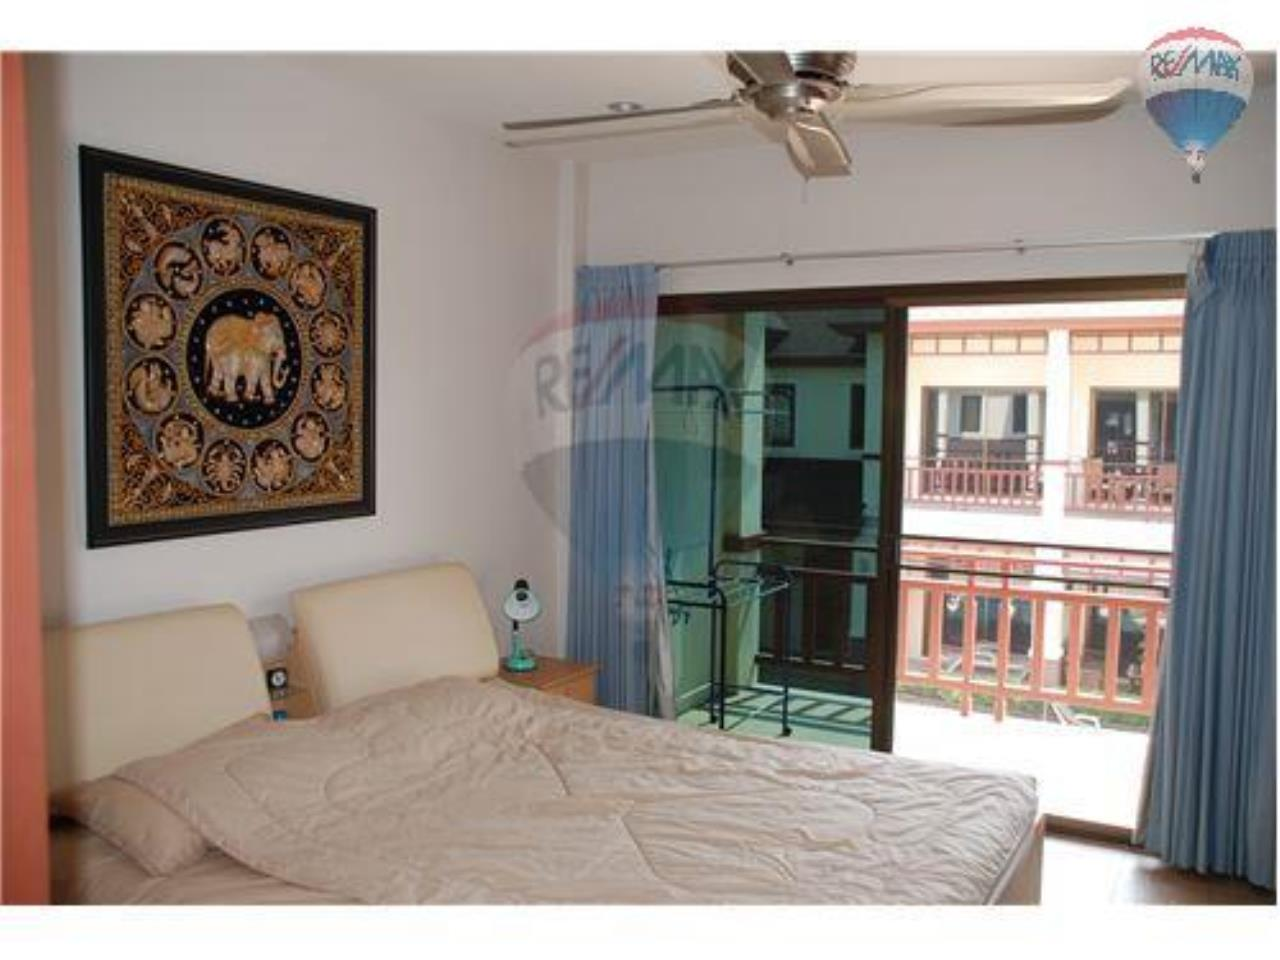 RE/MAX Beach Town Agency's Townhouse in Thai Paradise South, Cha-Am 10